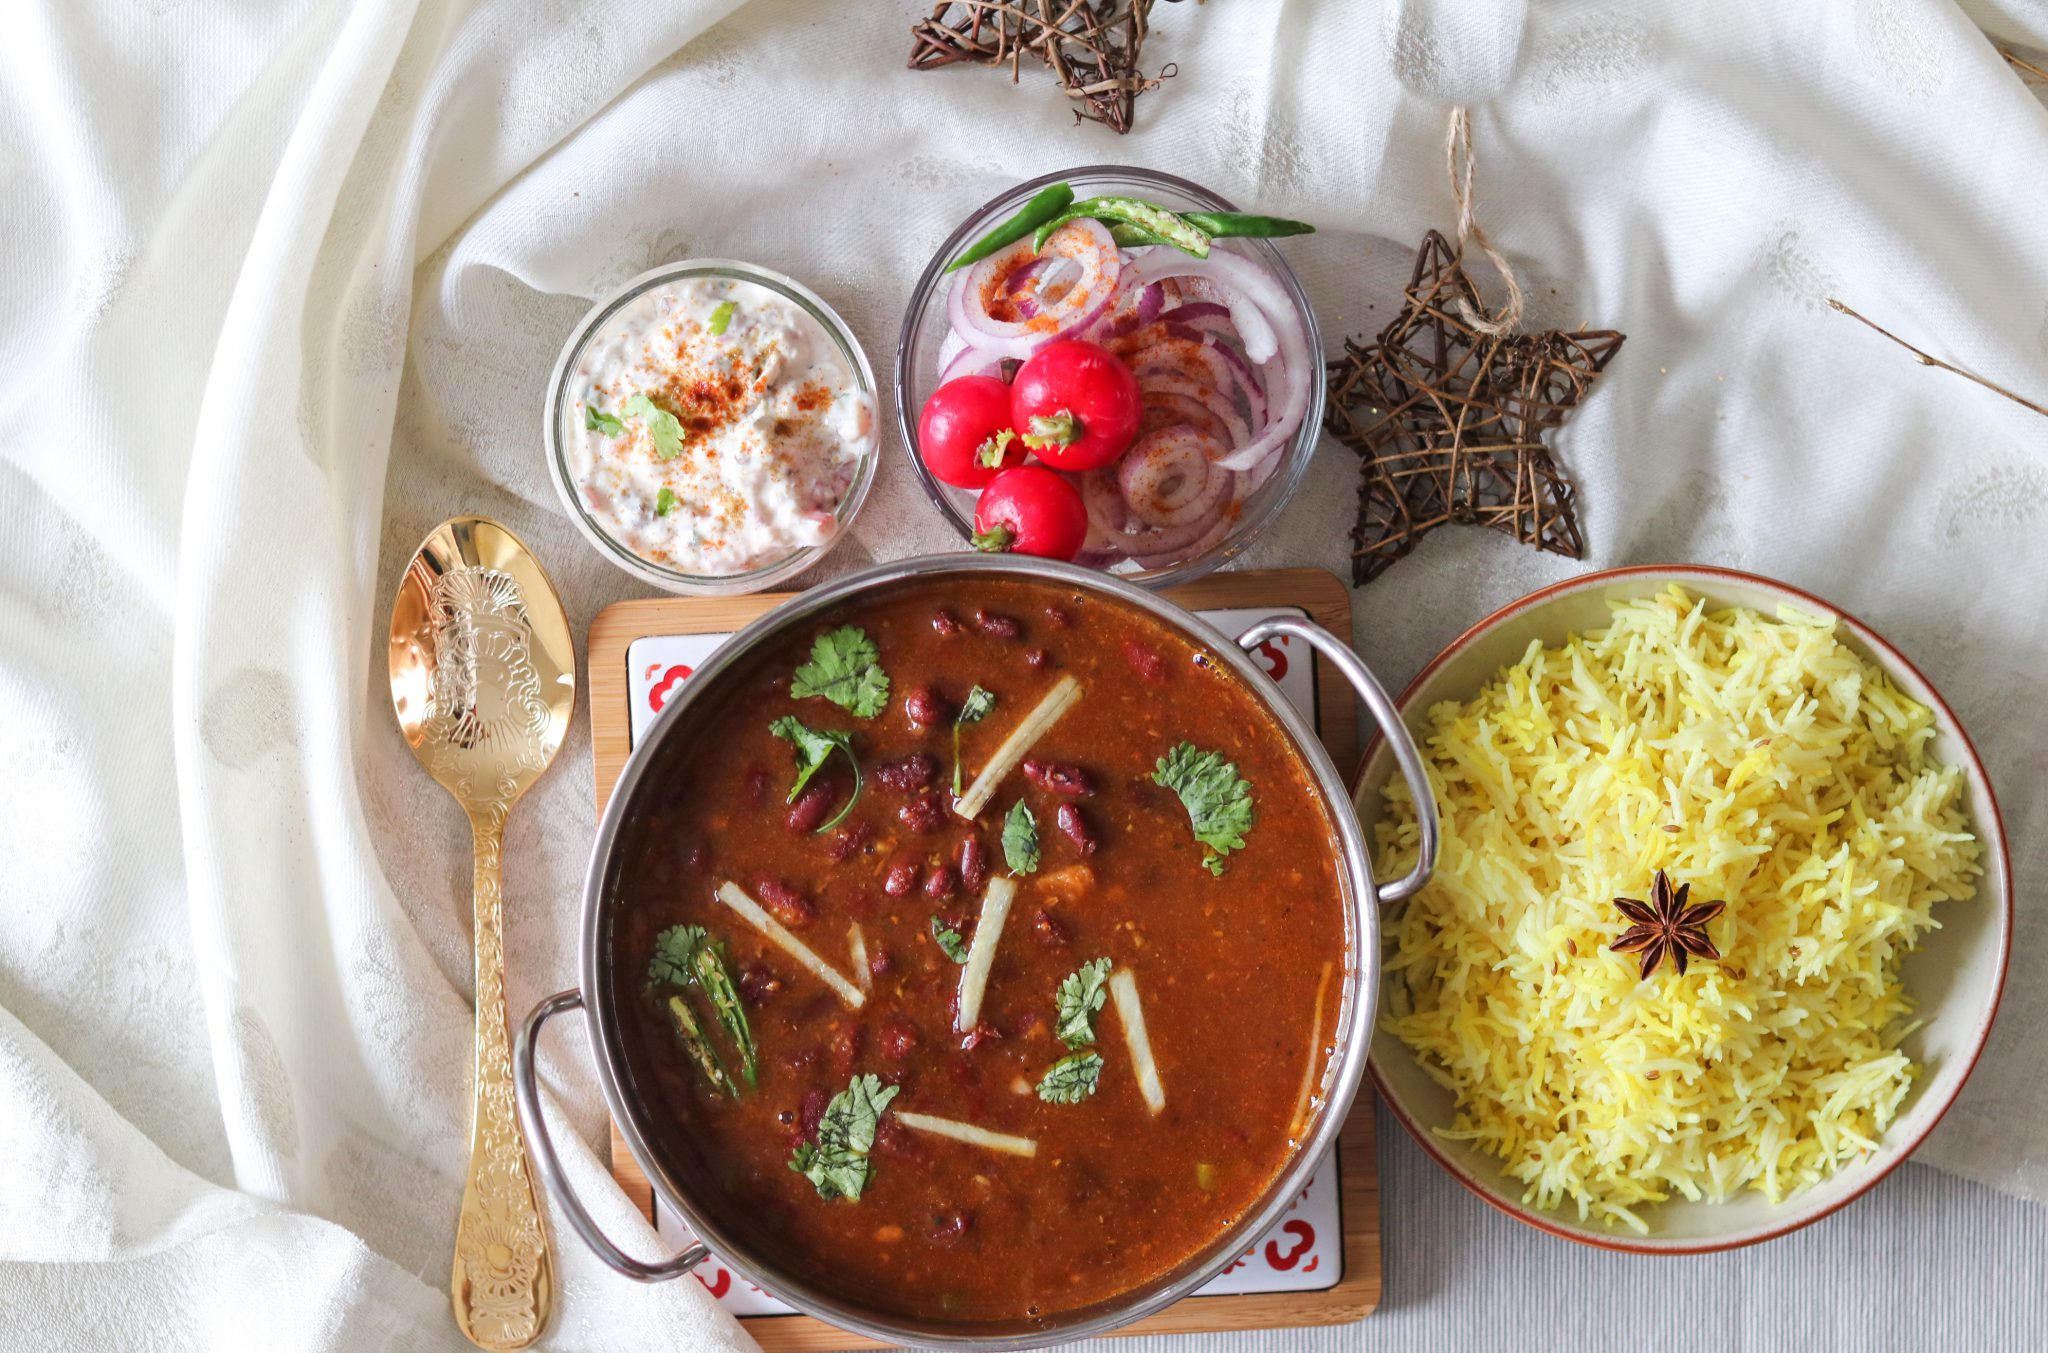 Rajma /Red kidney beans curry